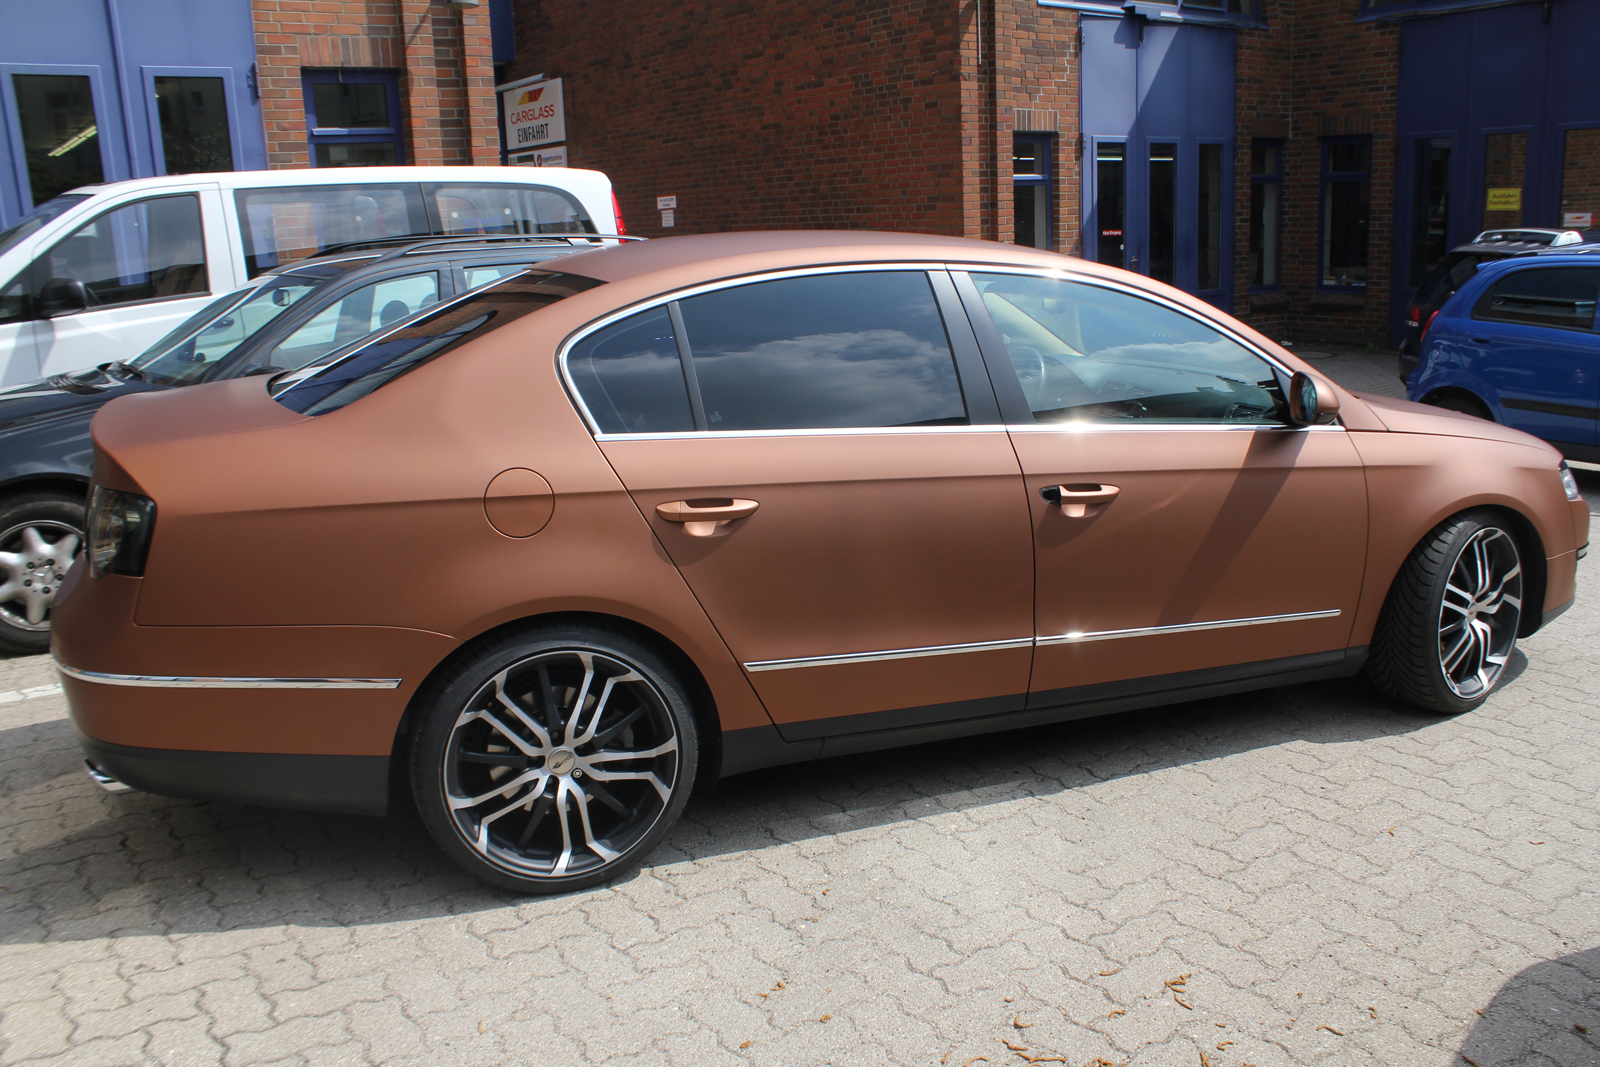 VW_Passat_Folierung_Bronze_matt_metallic_10